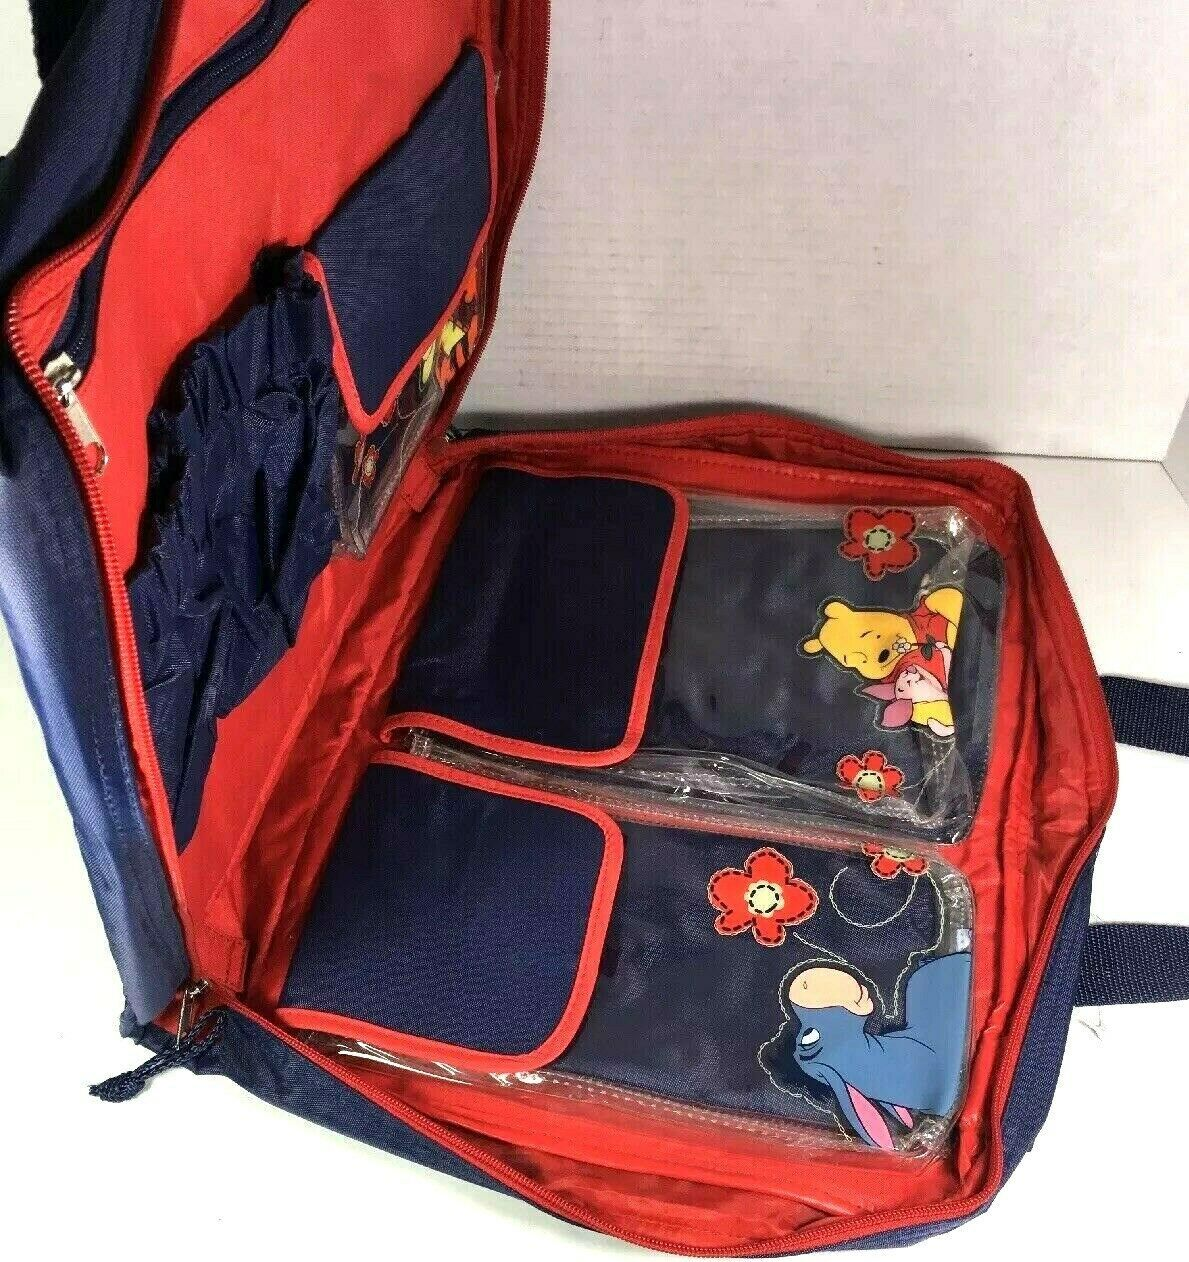 Winnie the Pooh Large Blue Nylon Travel Bag  image 4